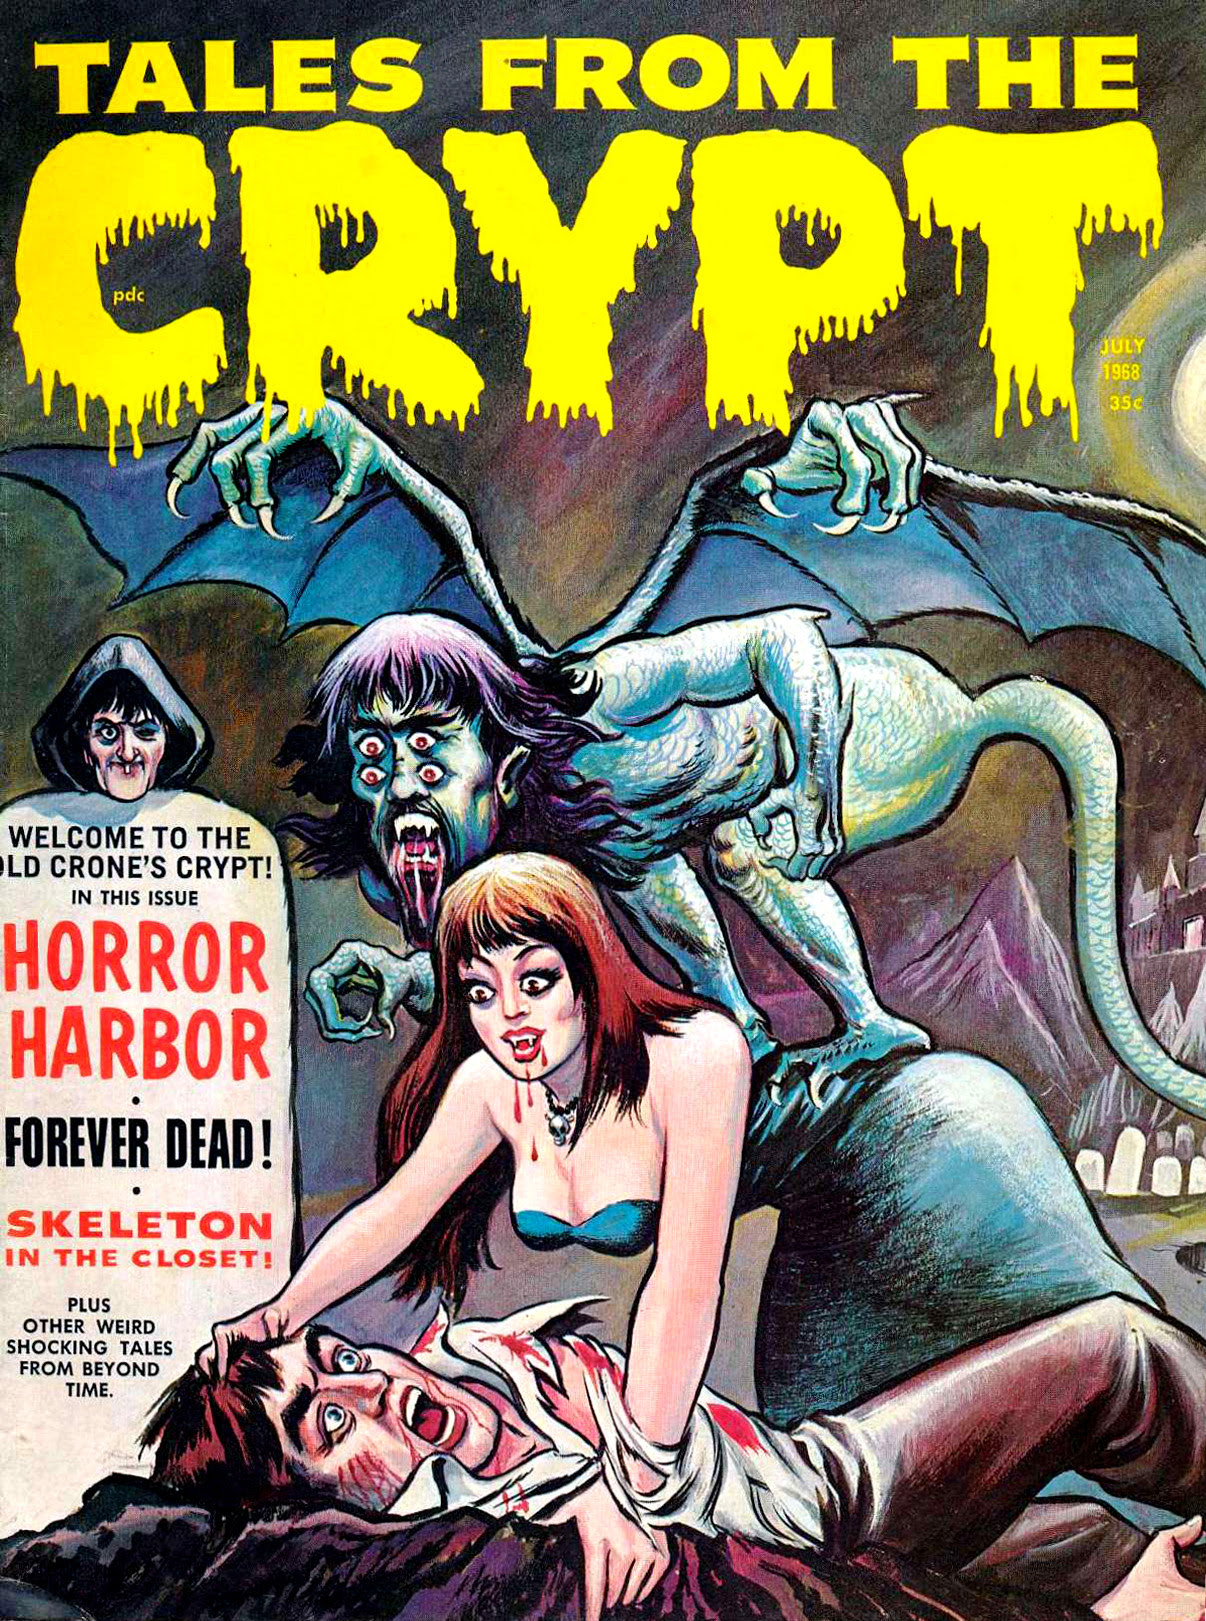 Tales From The Crypt - Issue 1 (Eerie Publications, July 1968)